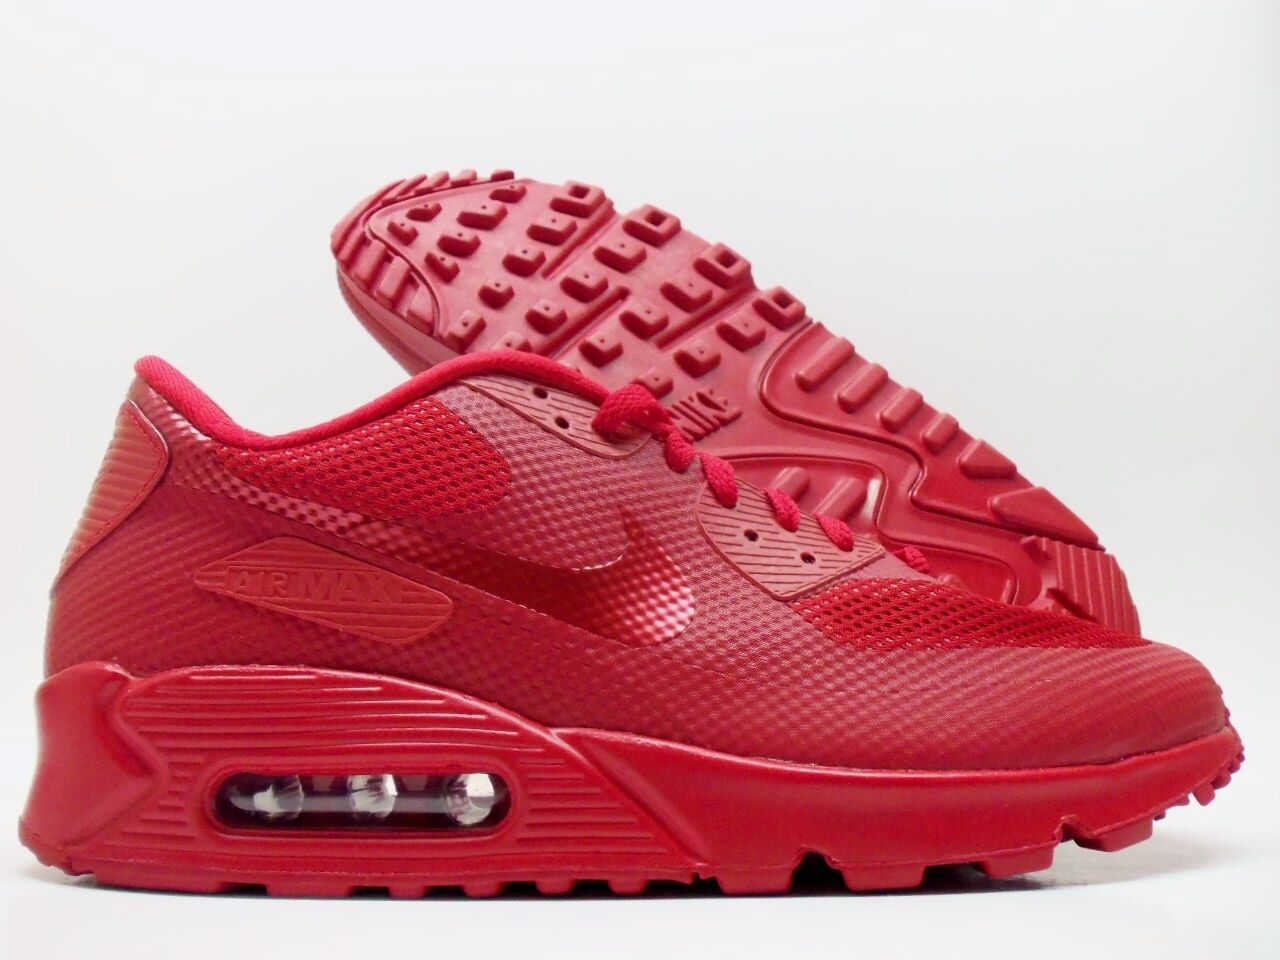 huge selection of 8ecc1 a4033 high-quality NIKE AIR MAX 90 HYPERFUSE PREMIUM ID TEAM RED SIZE MEN S 8.5